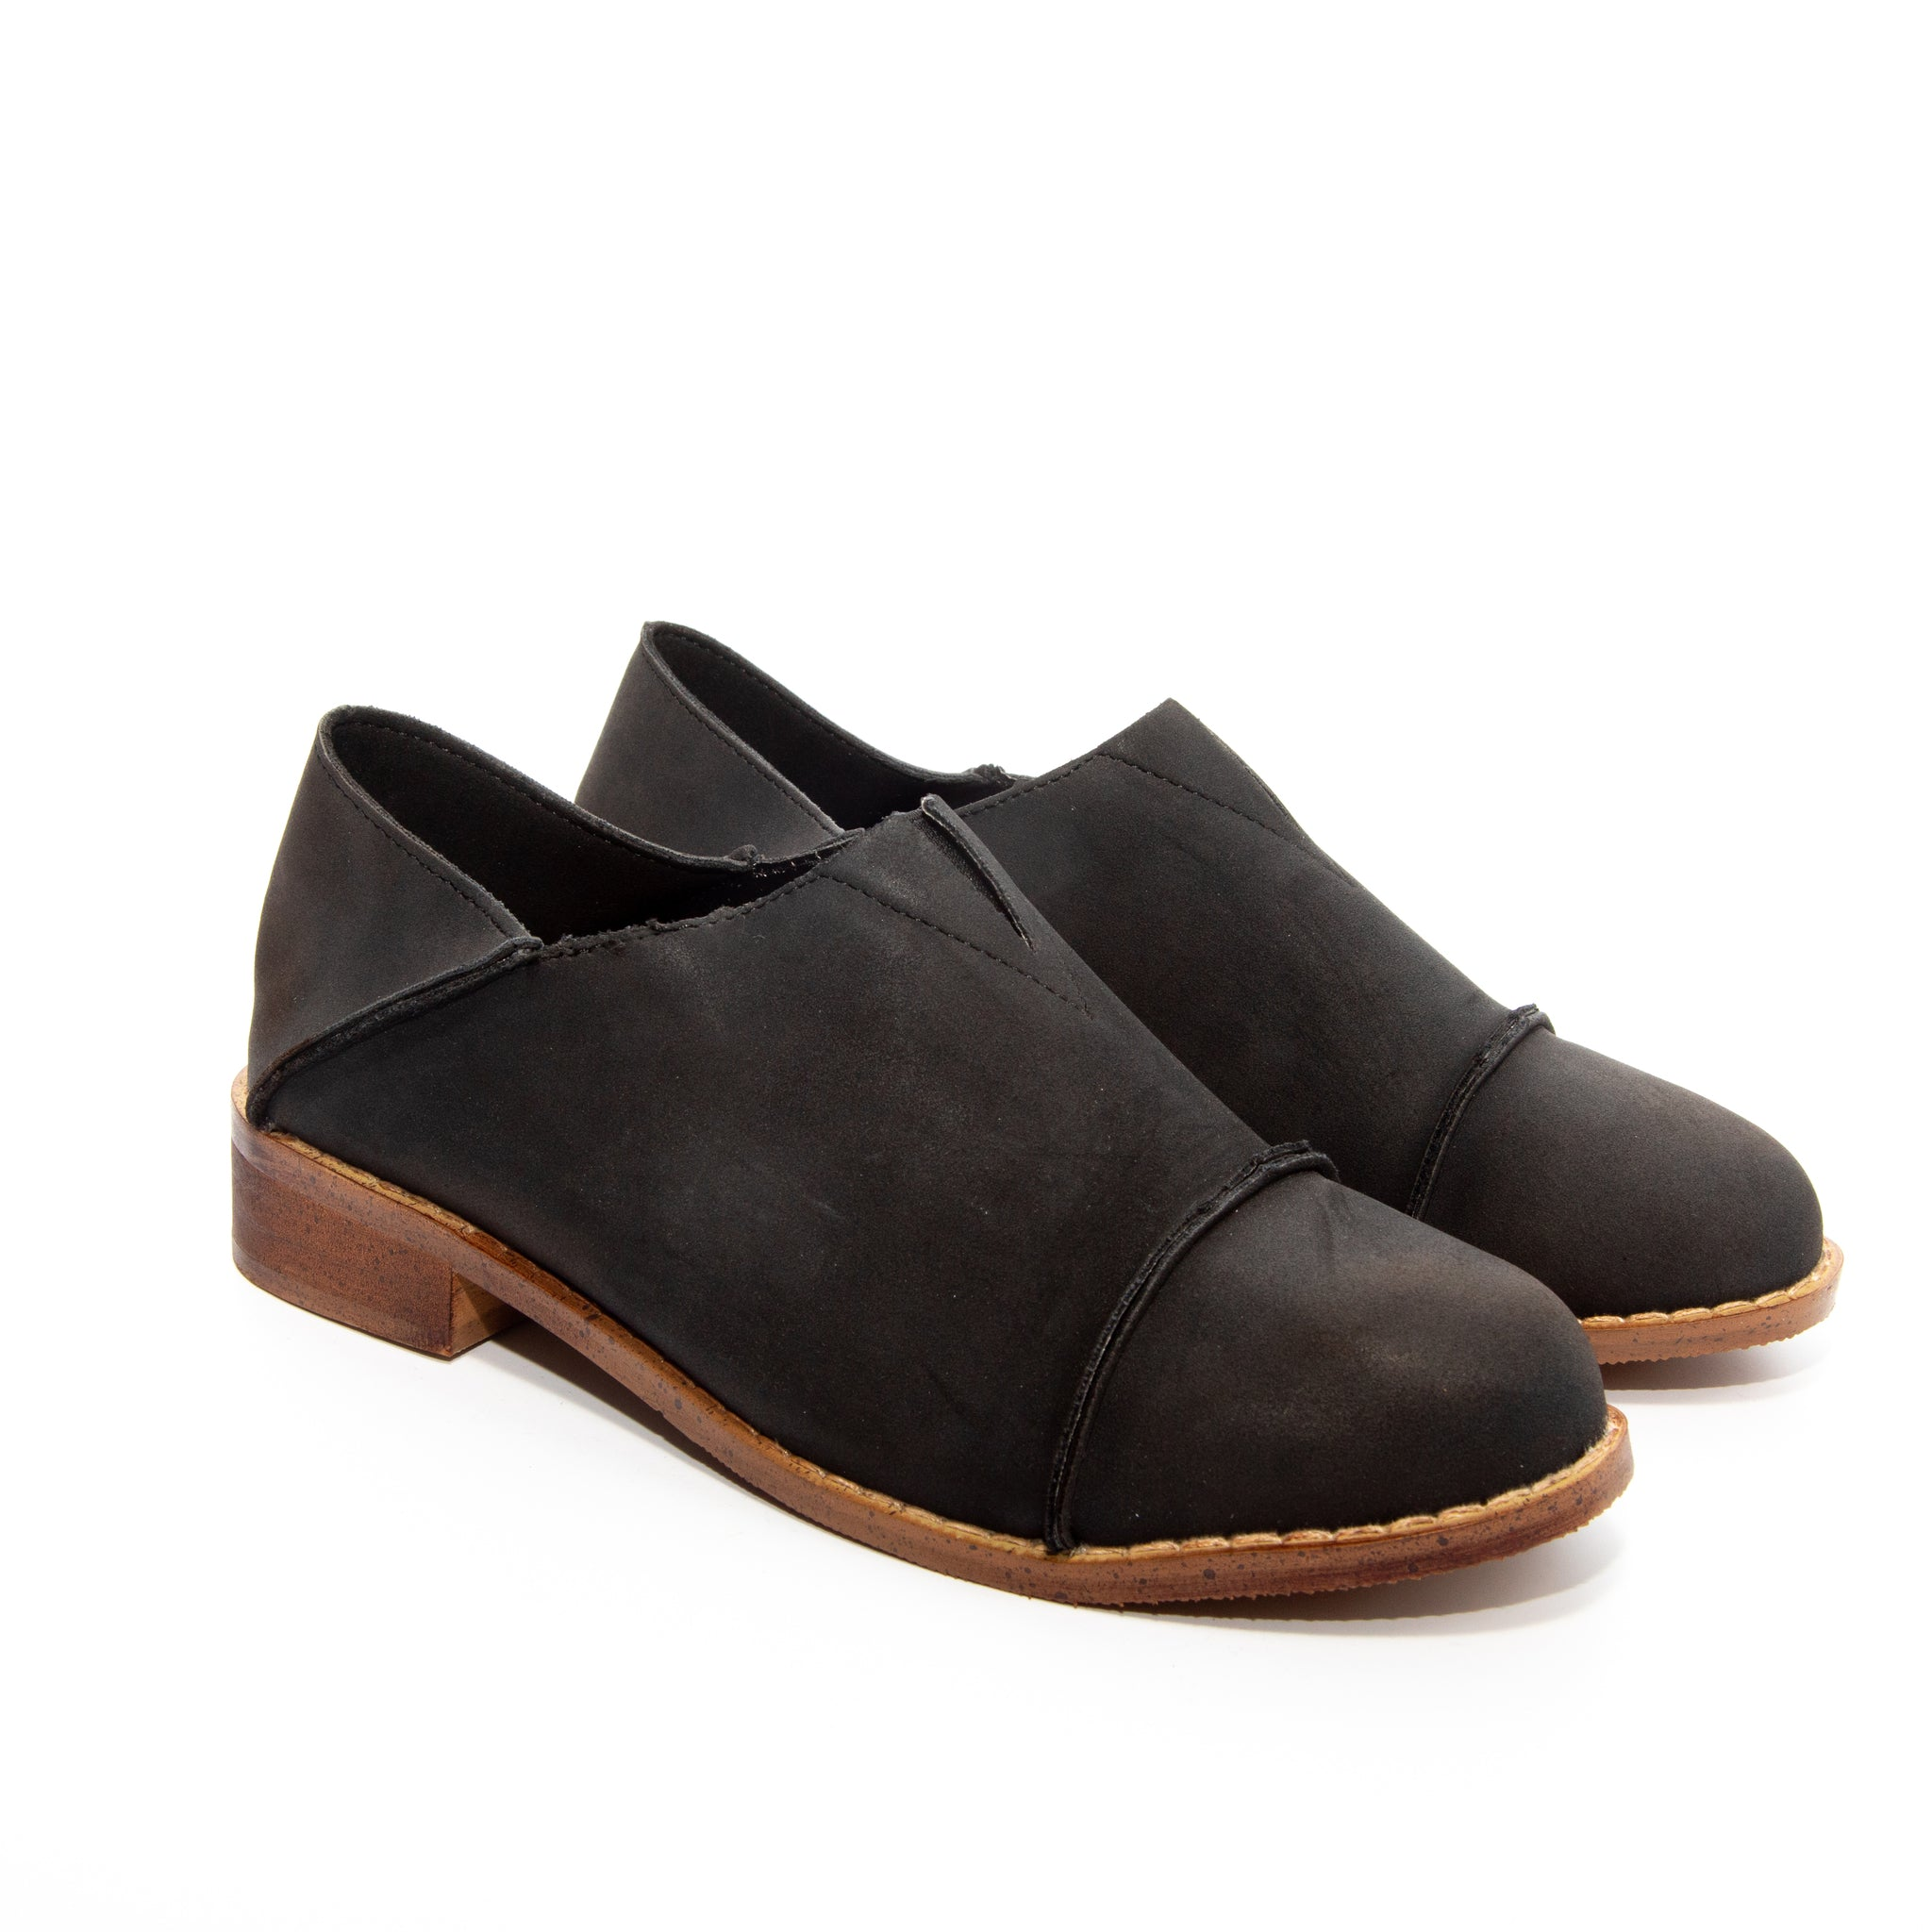 Diva by Dolce Nome | Slip-On Oxford Loafers in Black (pair view)